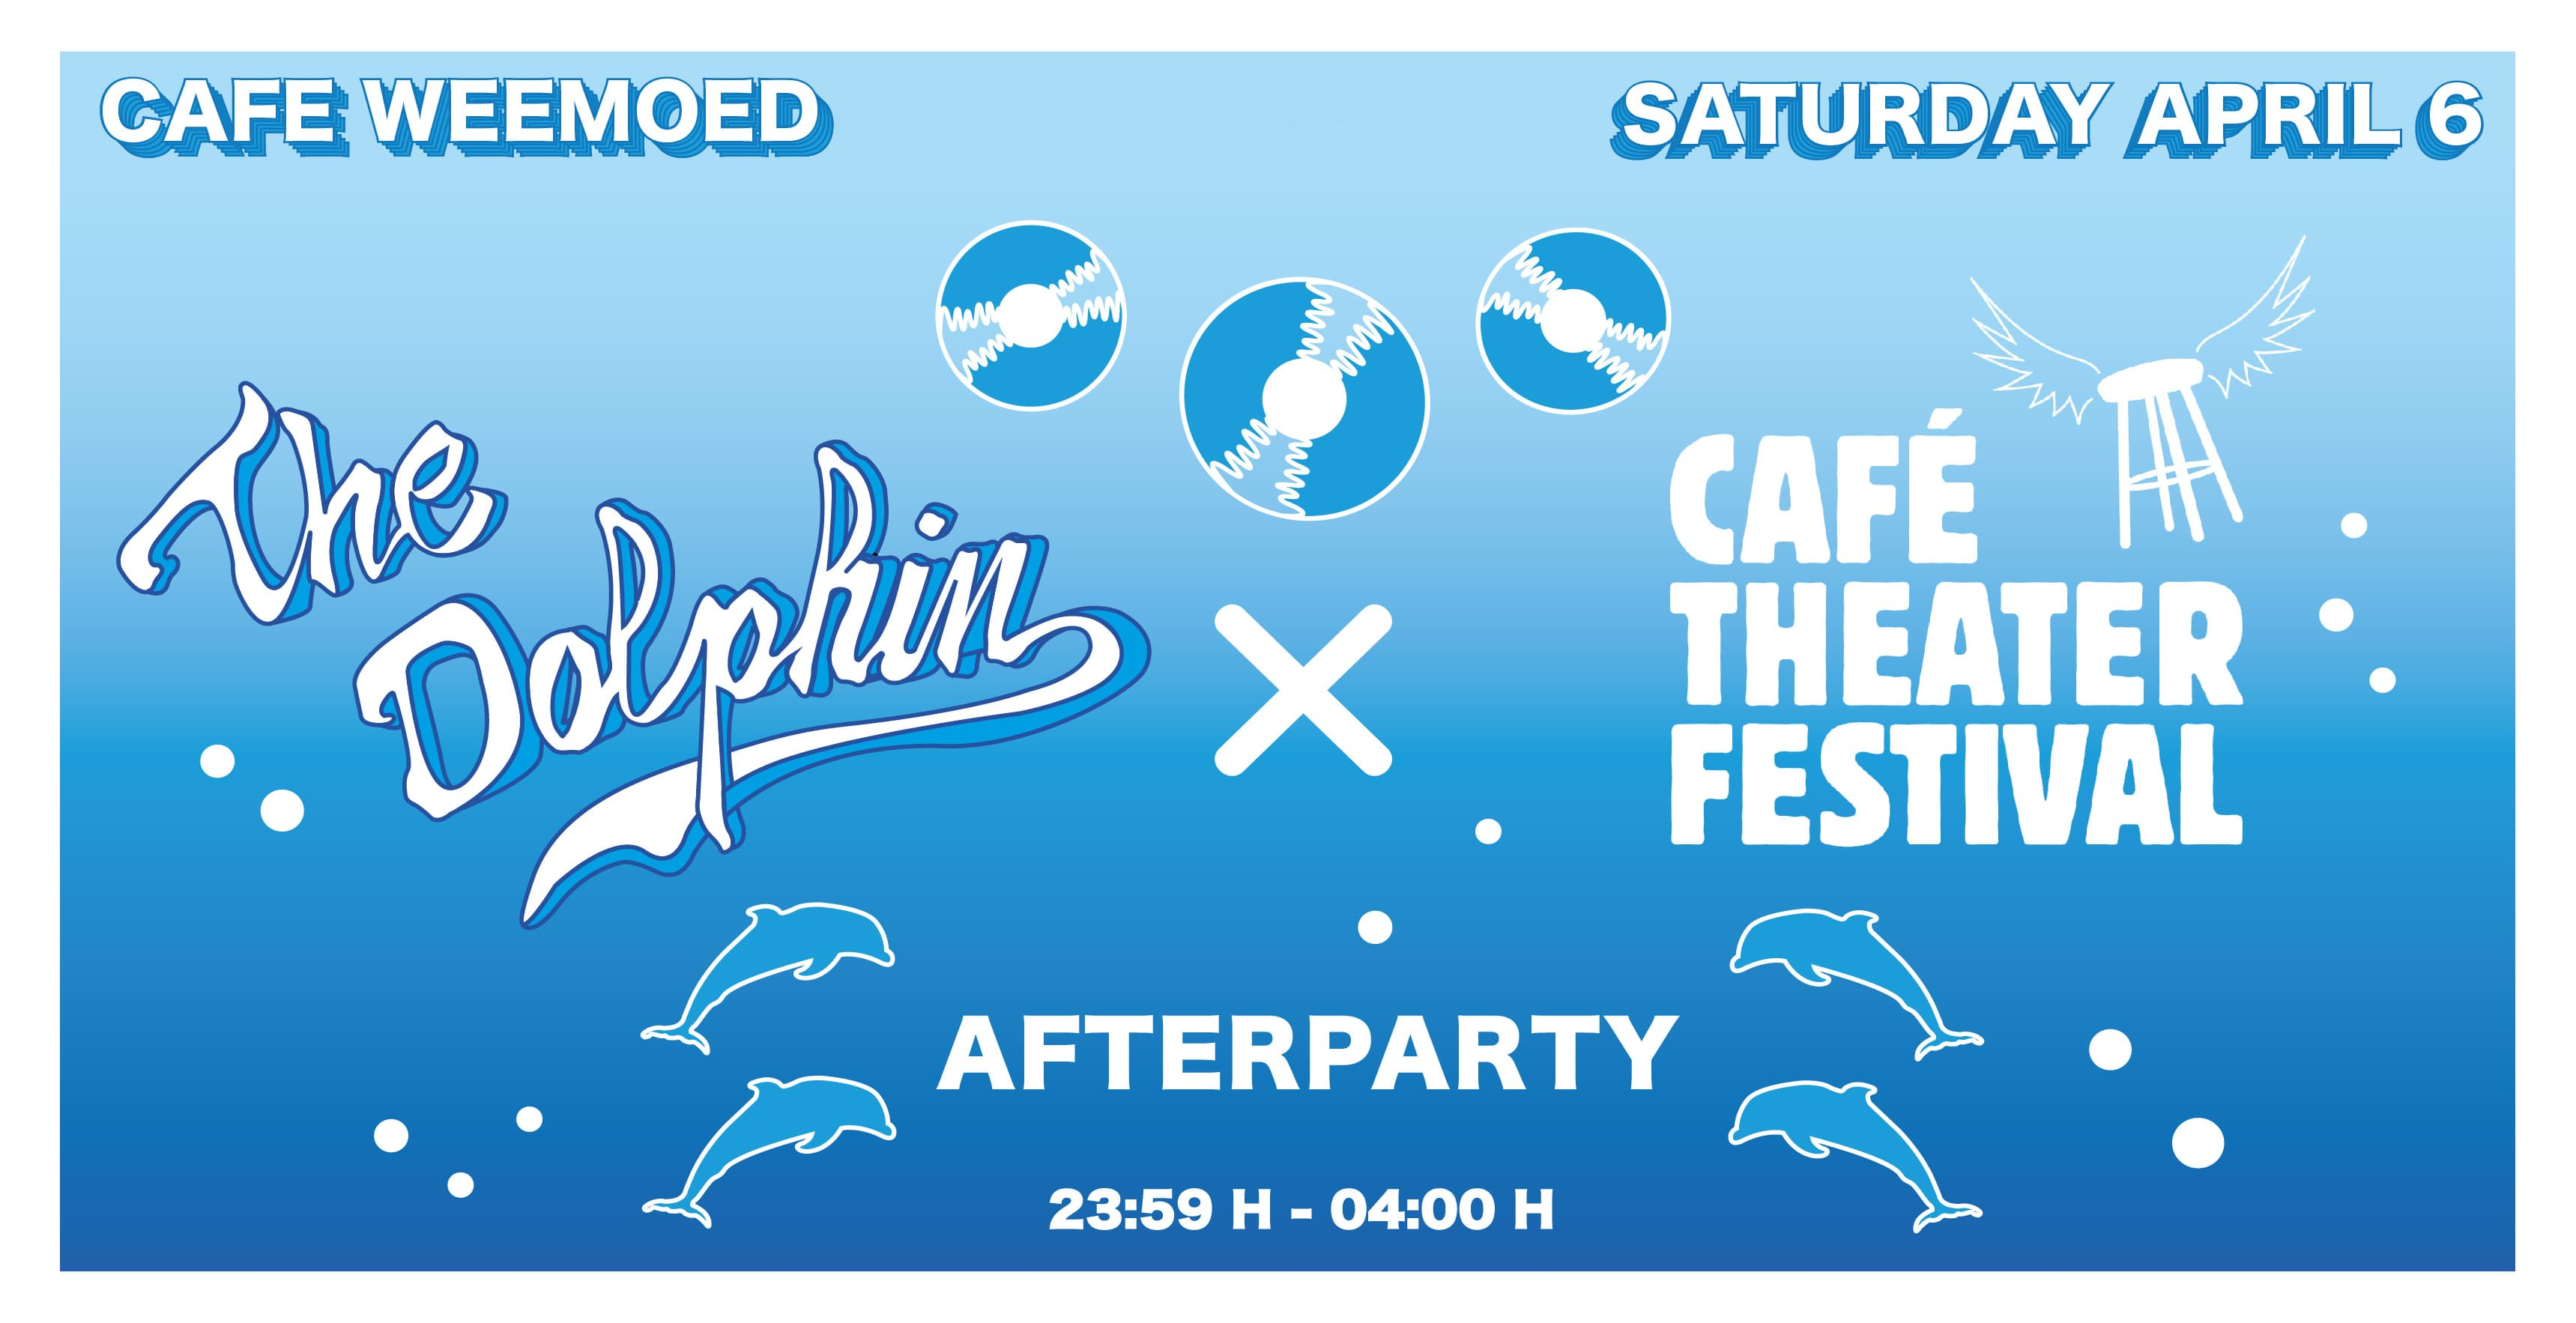 Zaterdag 6-4: Afterparty The Dolphin X Café Theater Festival Tilburg